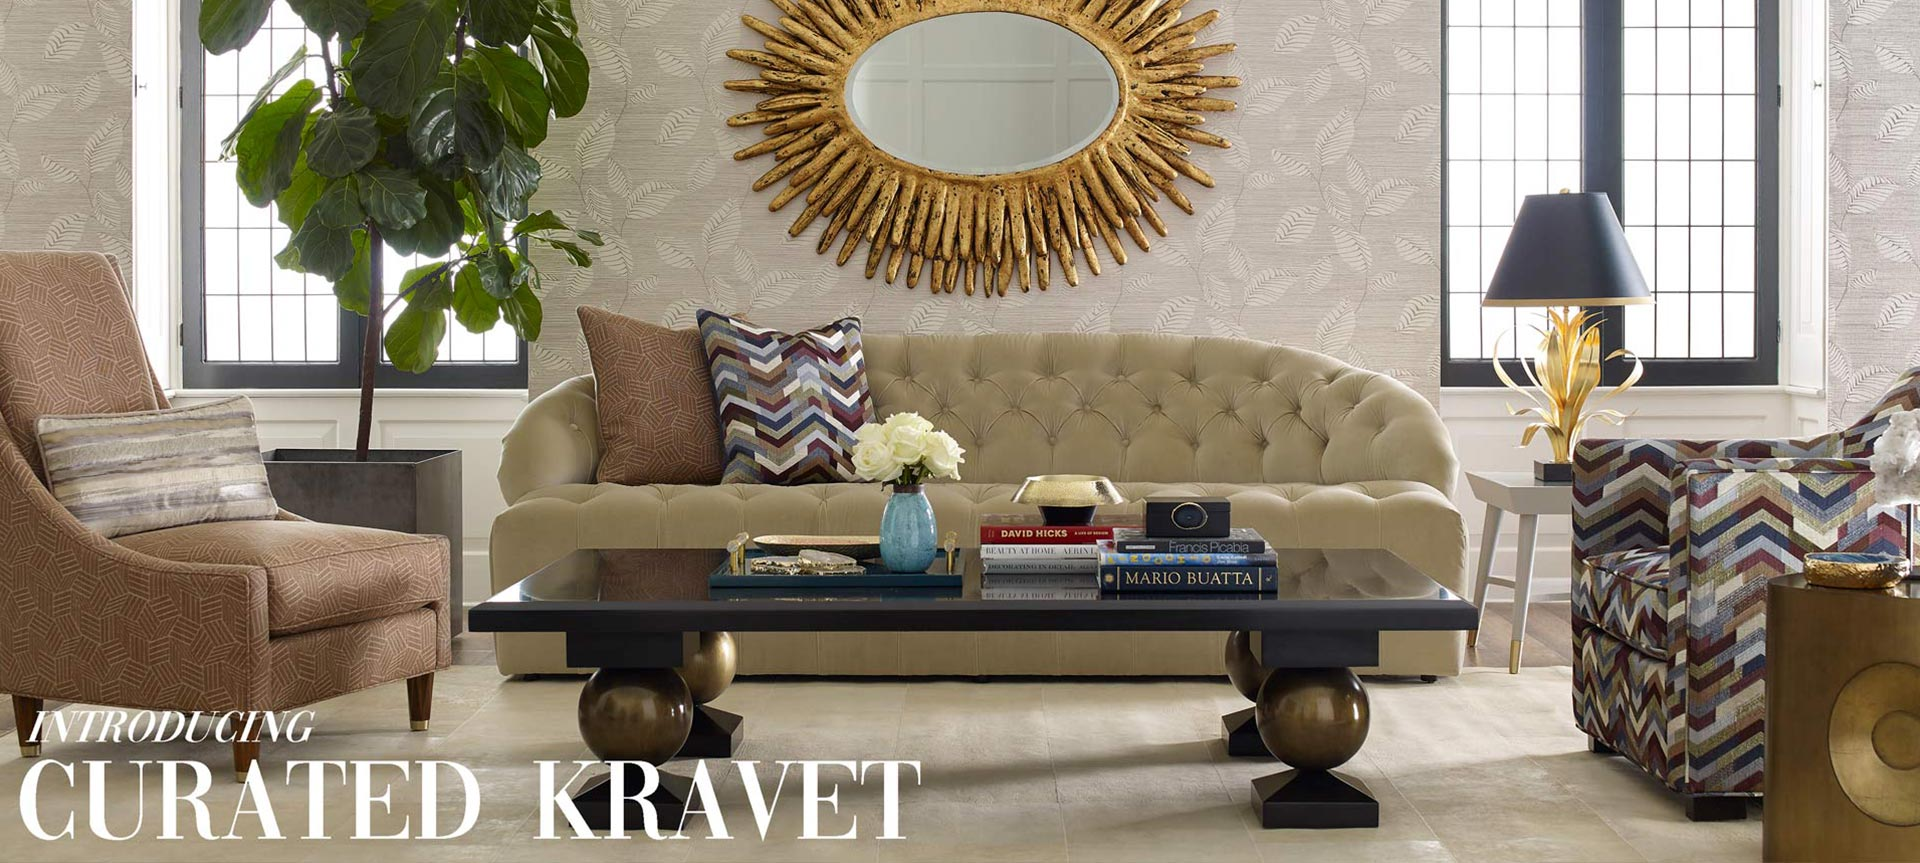 curated kravet accessories in stock